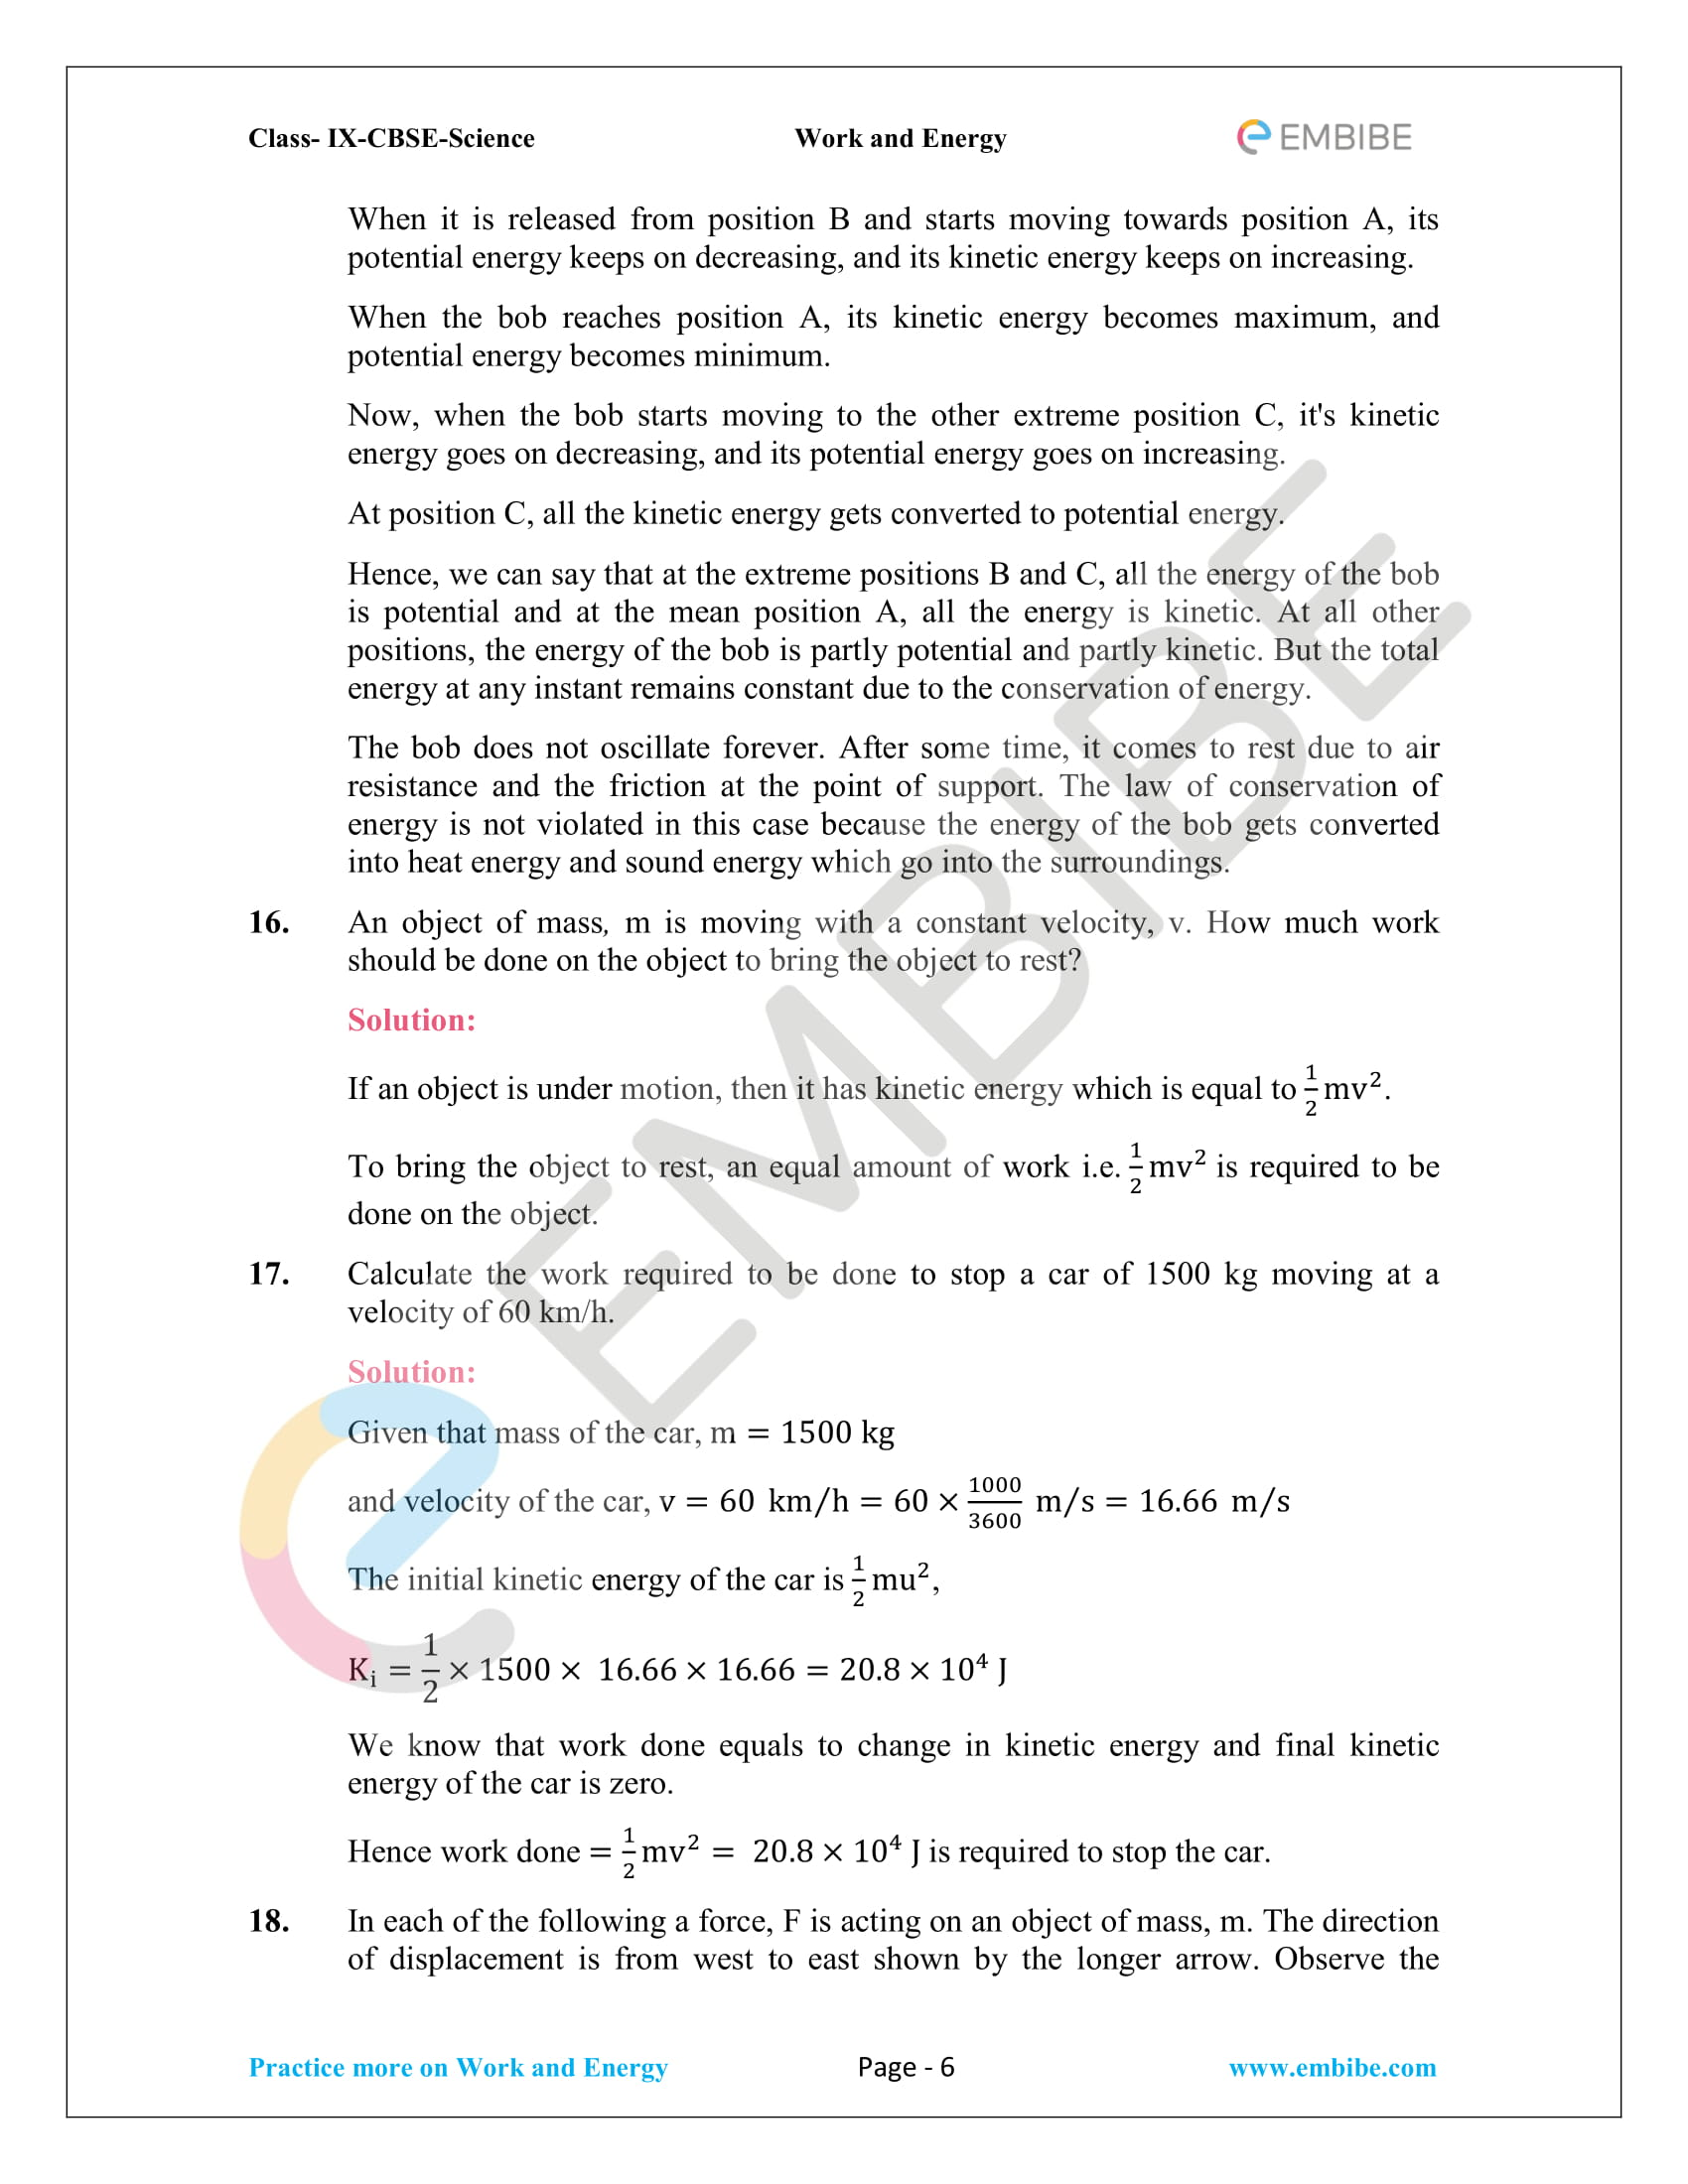 CBSE NCERT Solutions For Class 9 Science Chapter 11 – Work And Energy - 6